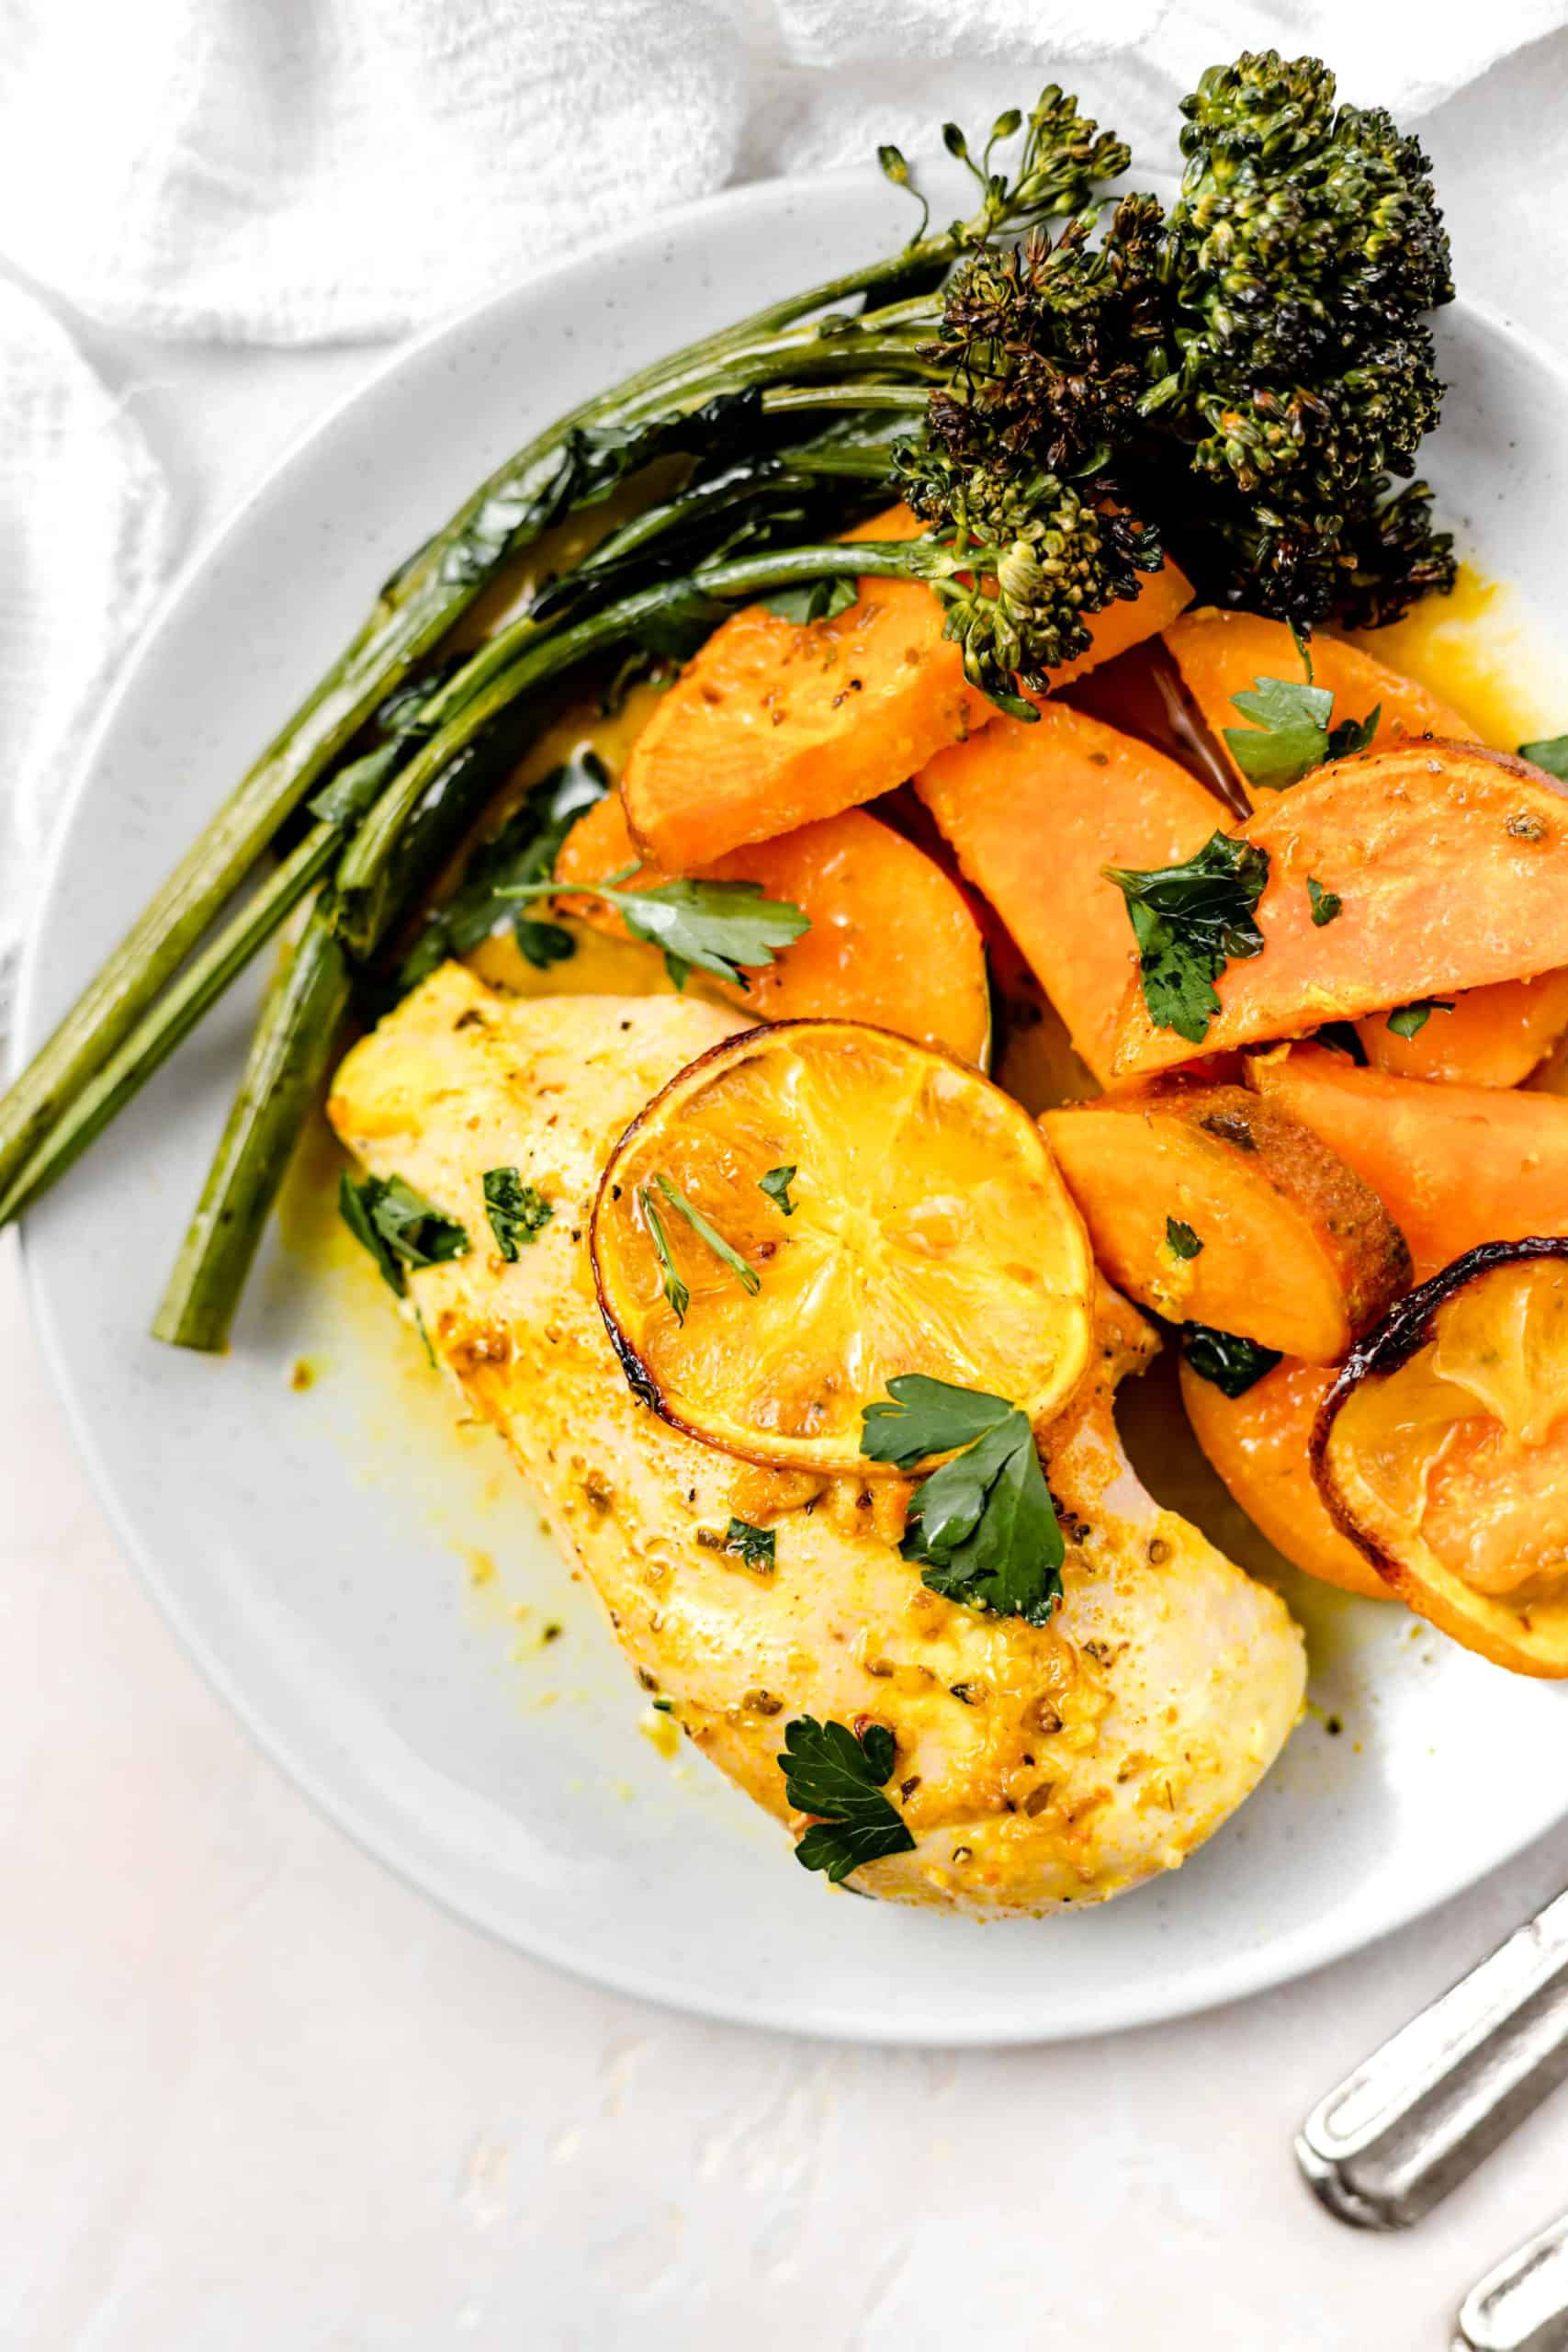 lemon chicken roasted sweet potatoes and broccolini in a plate